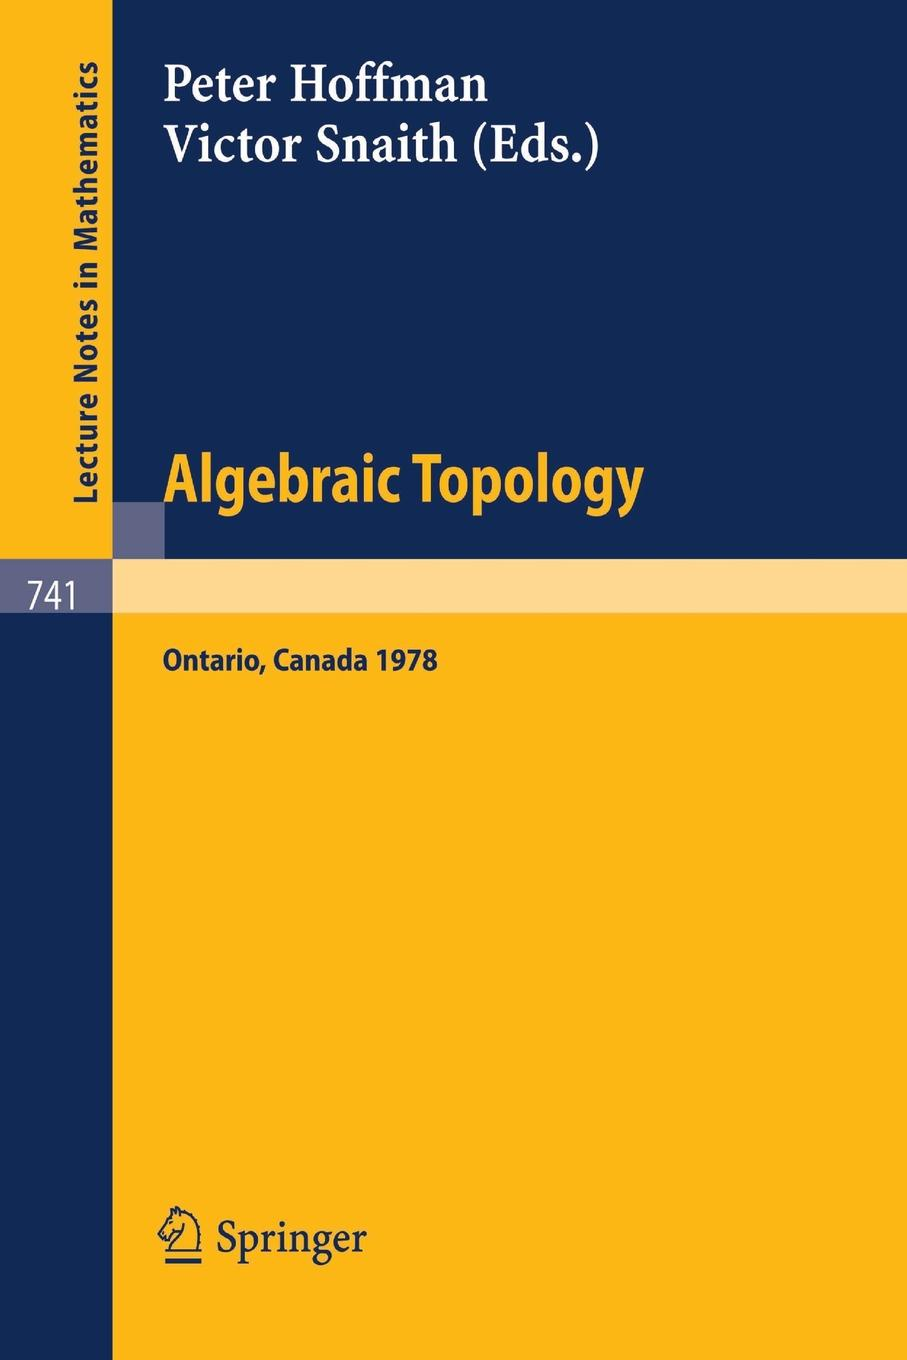 Фото - Algebraic Topology. Waterloo 1978. Proceedings of a Conference Sponsored by the Canadian Mathematical Society, NSERC (Canada), and the University of Waterloo, June 1978 james campbell nicholas bill karey draper proceedings of the first conference of the construction history society